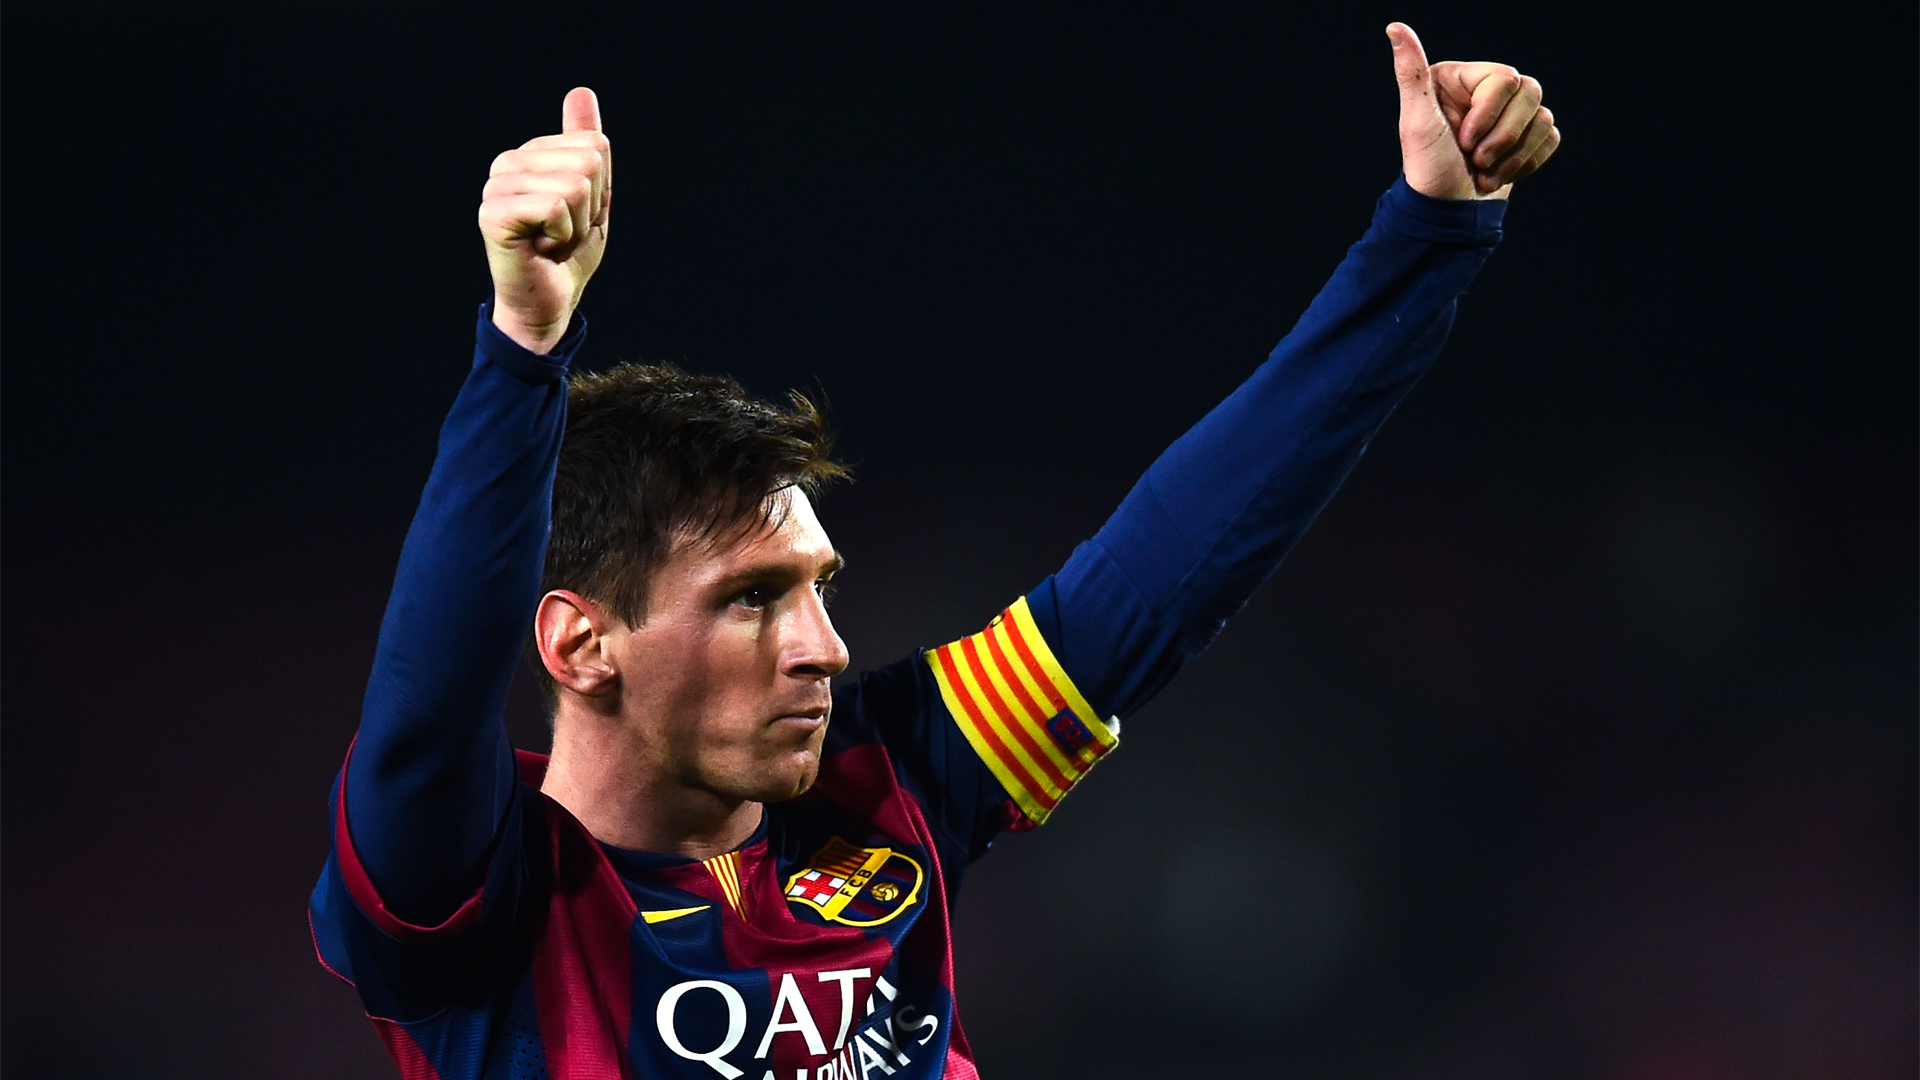 Are you looking for Lionel Messi HD Wallpapers? Download latest 1920x1080